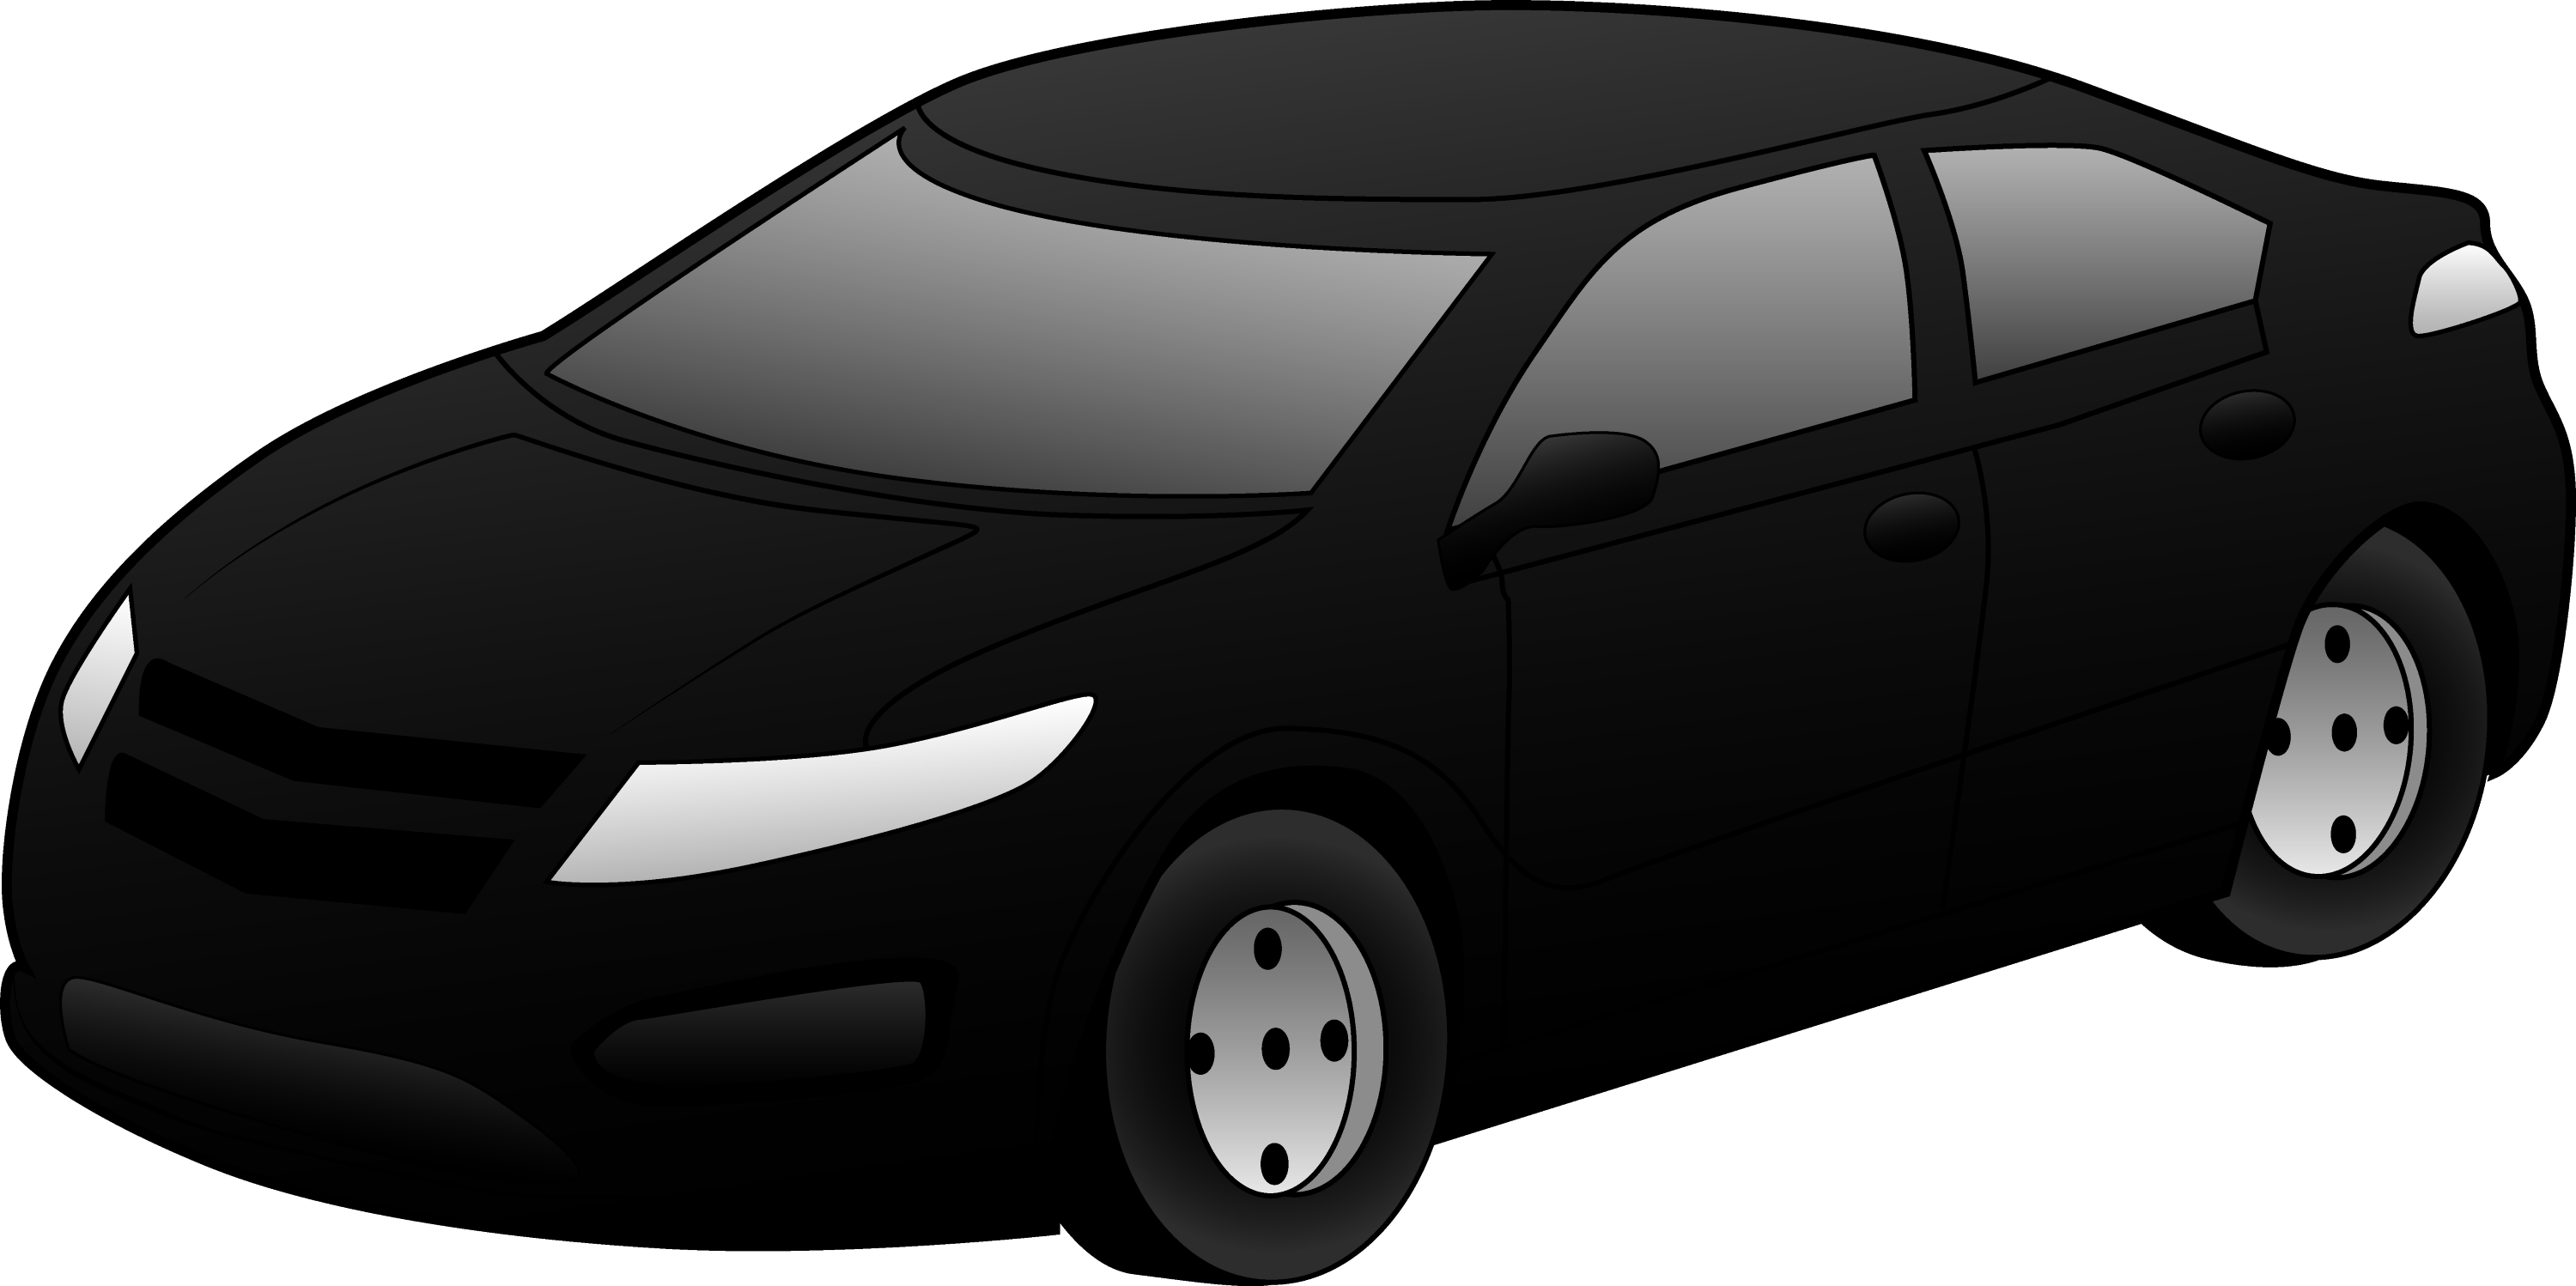 black sports car clipart - photo #1